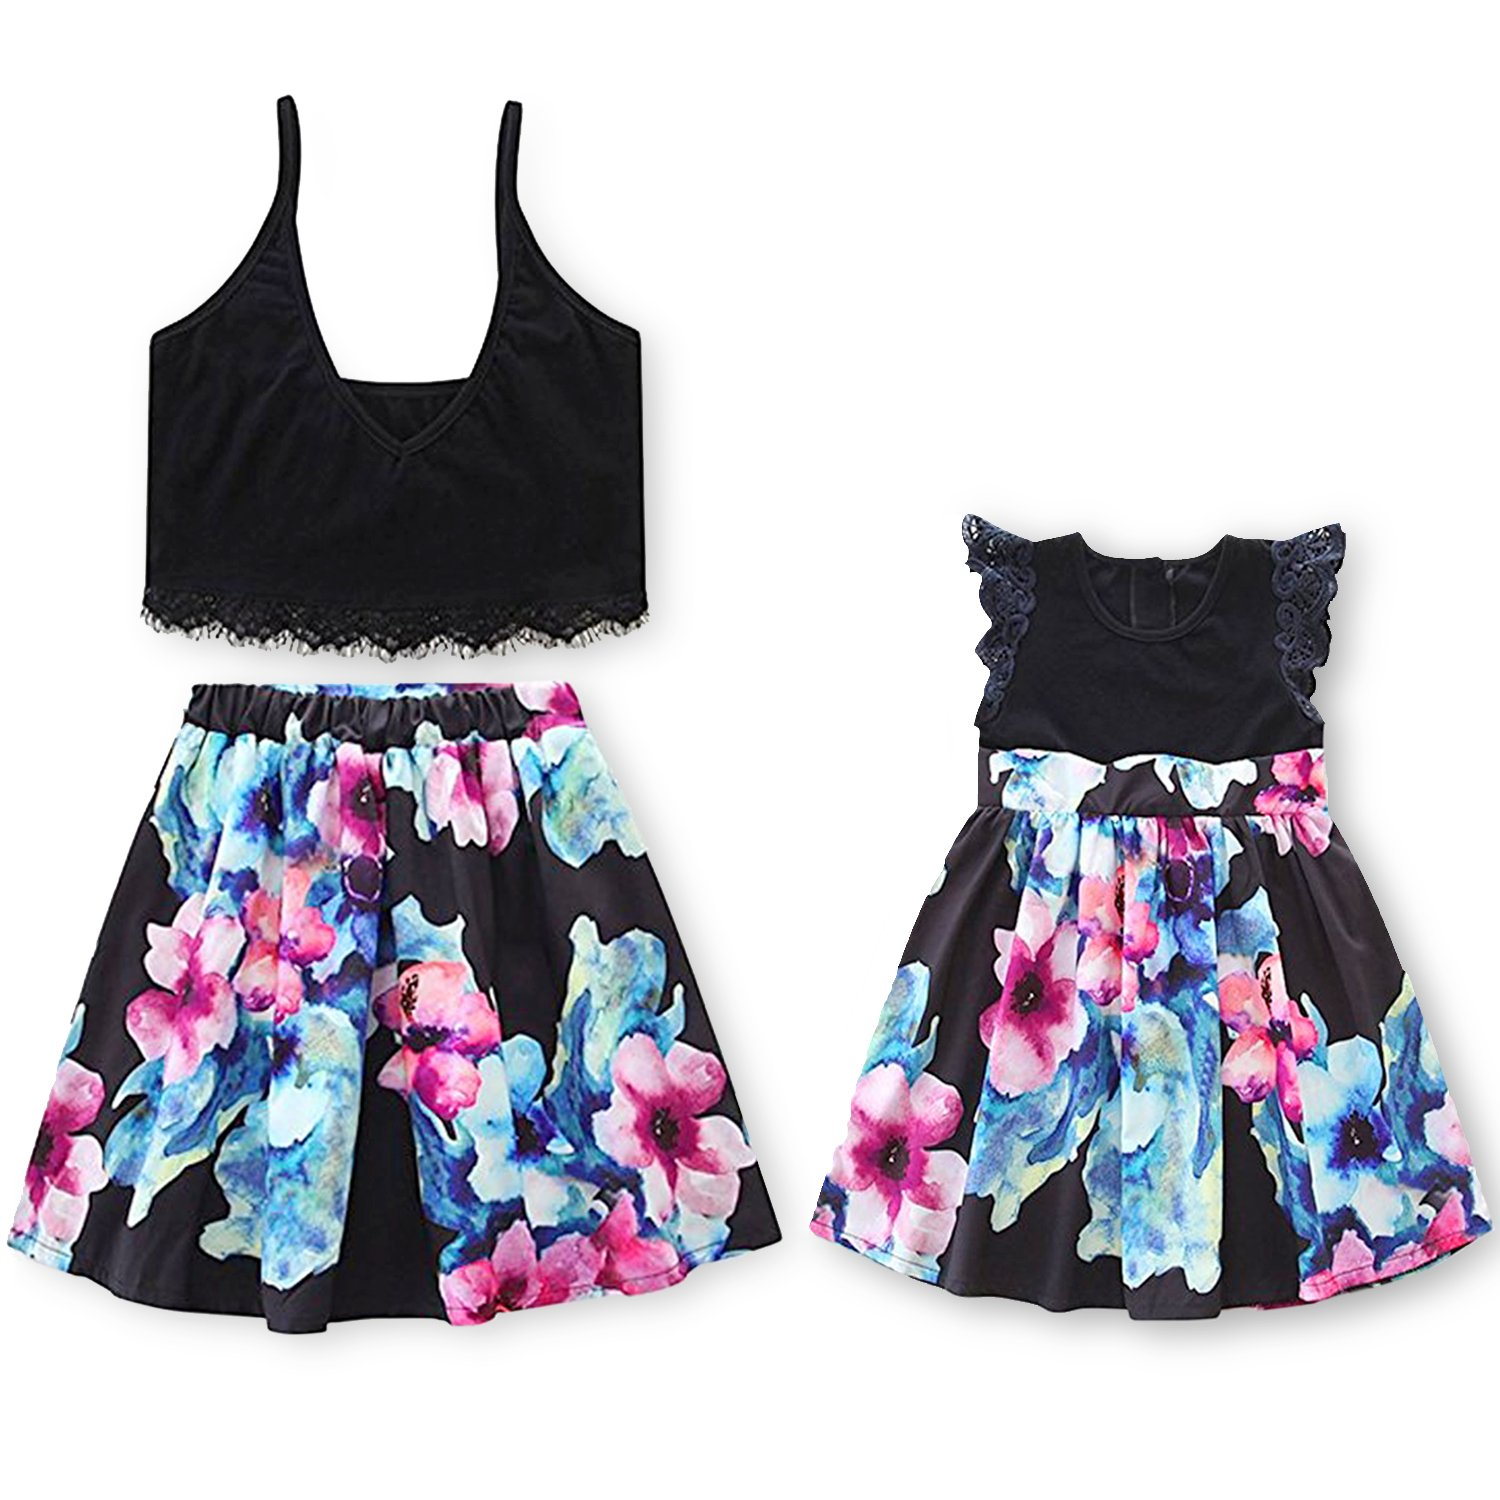 7a3101e635 Amazon.com: Garlagy 2018 Mommy Me Family Matching Outfits Mother Girl  Casual Dresses Summer Clothes Set (Women: X-Large(US 14-16), A-Black Flower( Mommy)): ...